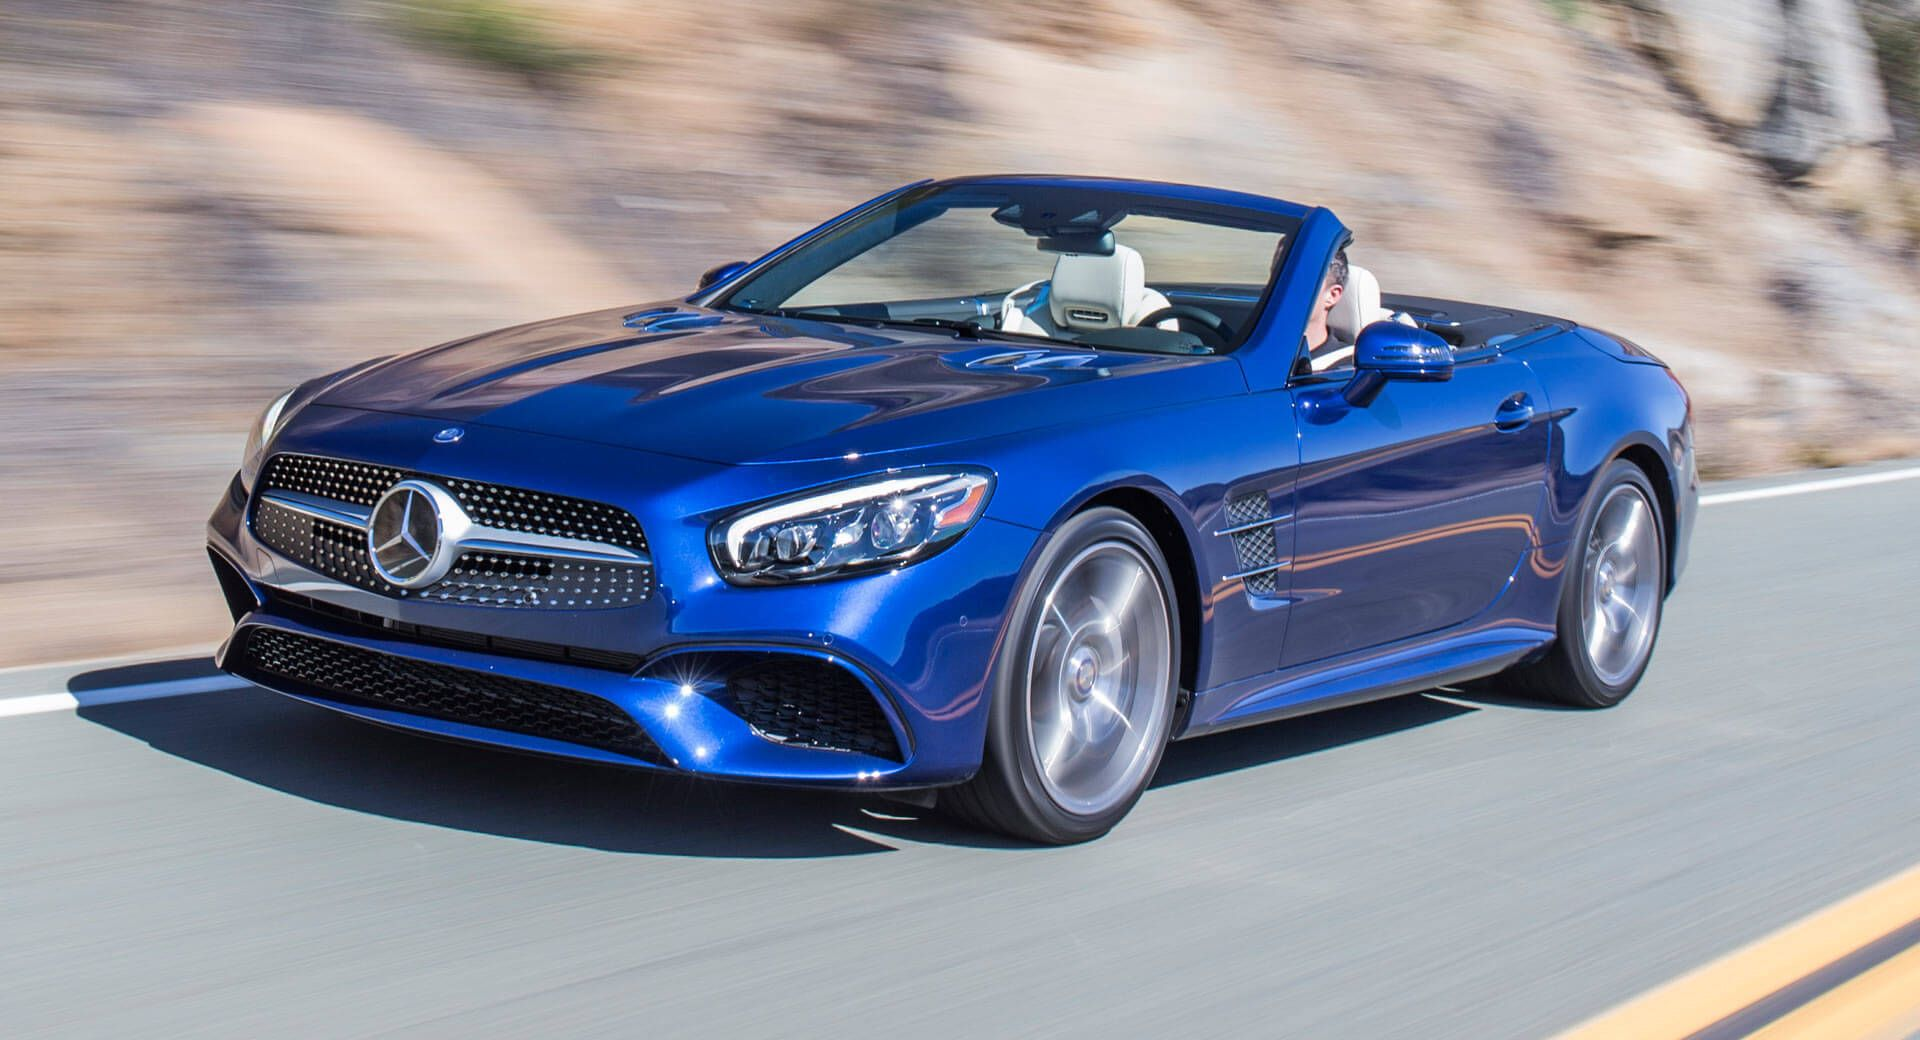 New Mercedes Sl Due In 2021 Being Developed Alongside The Next Amg Gt Carscoops Mercedes Sl New Mercedes Mercedes